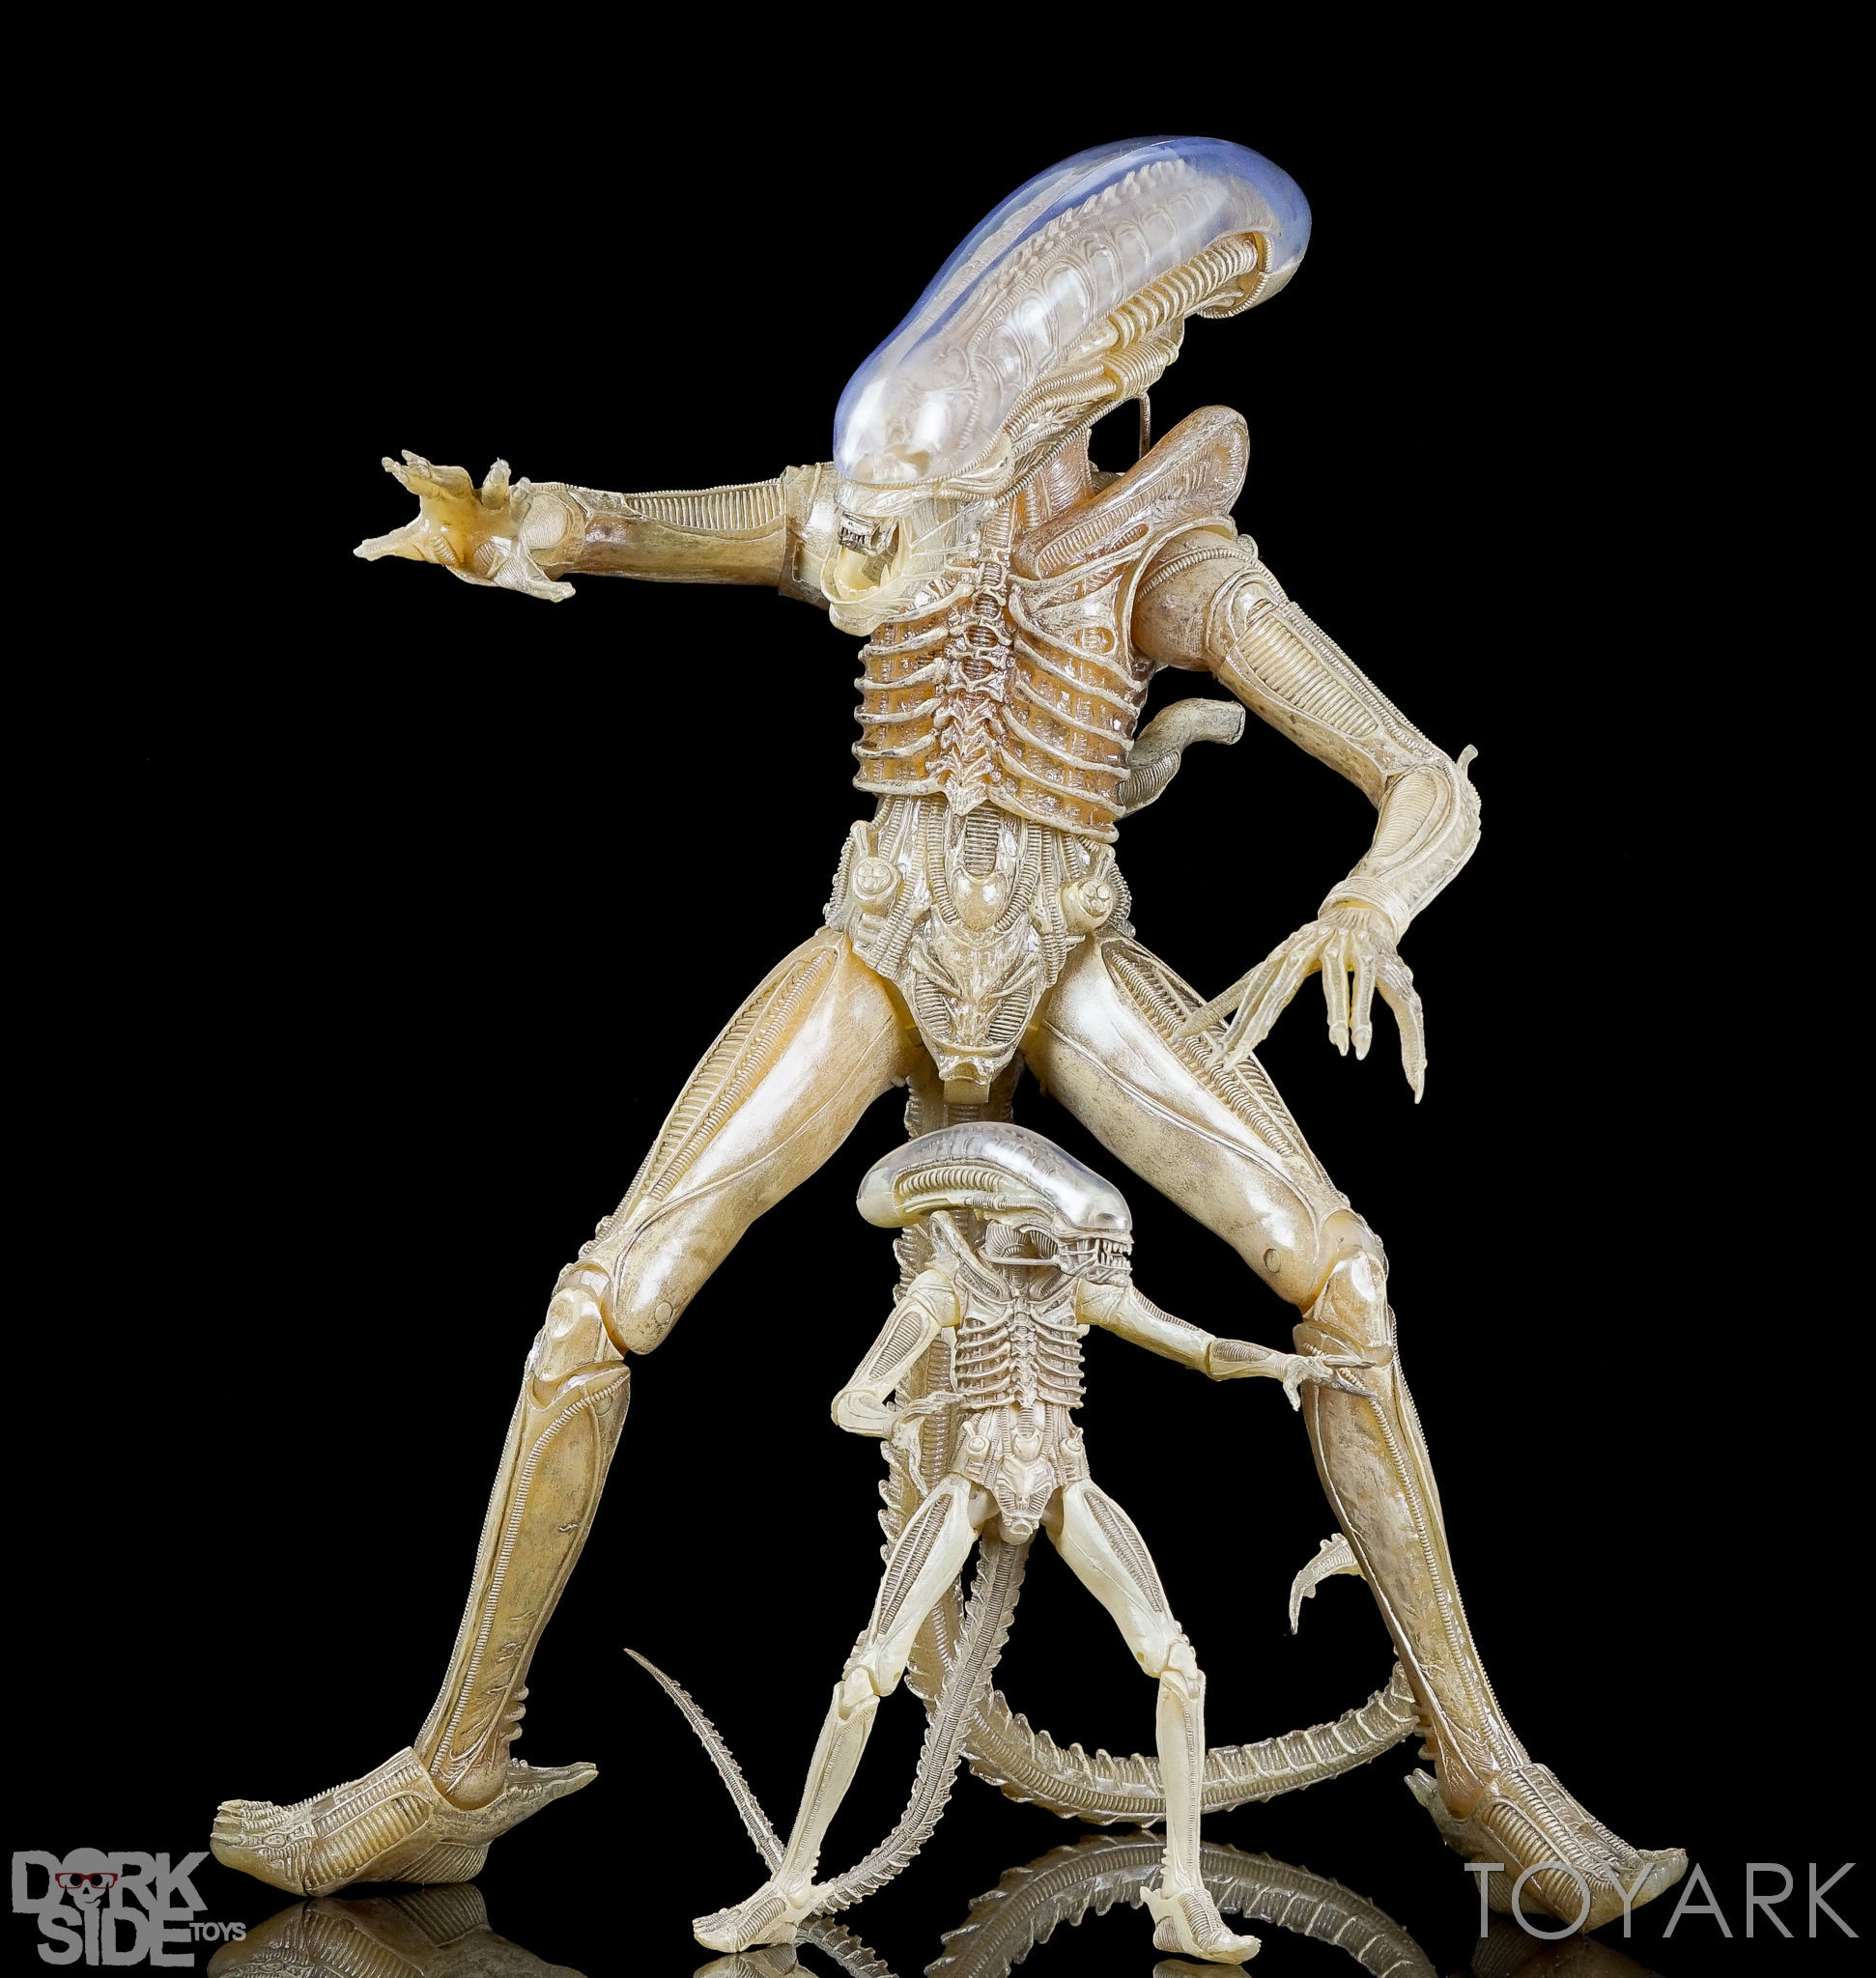 http://news.toyark.com/wp-content/uploads/sites/4/2016/10/NECA-Quarter-Scale-Concept-Alien-047.jpg